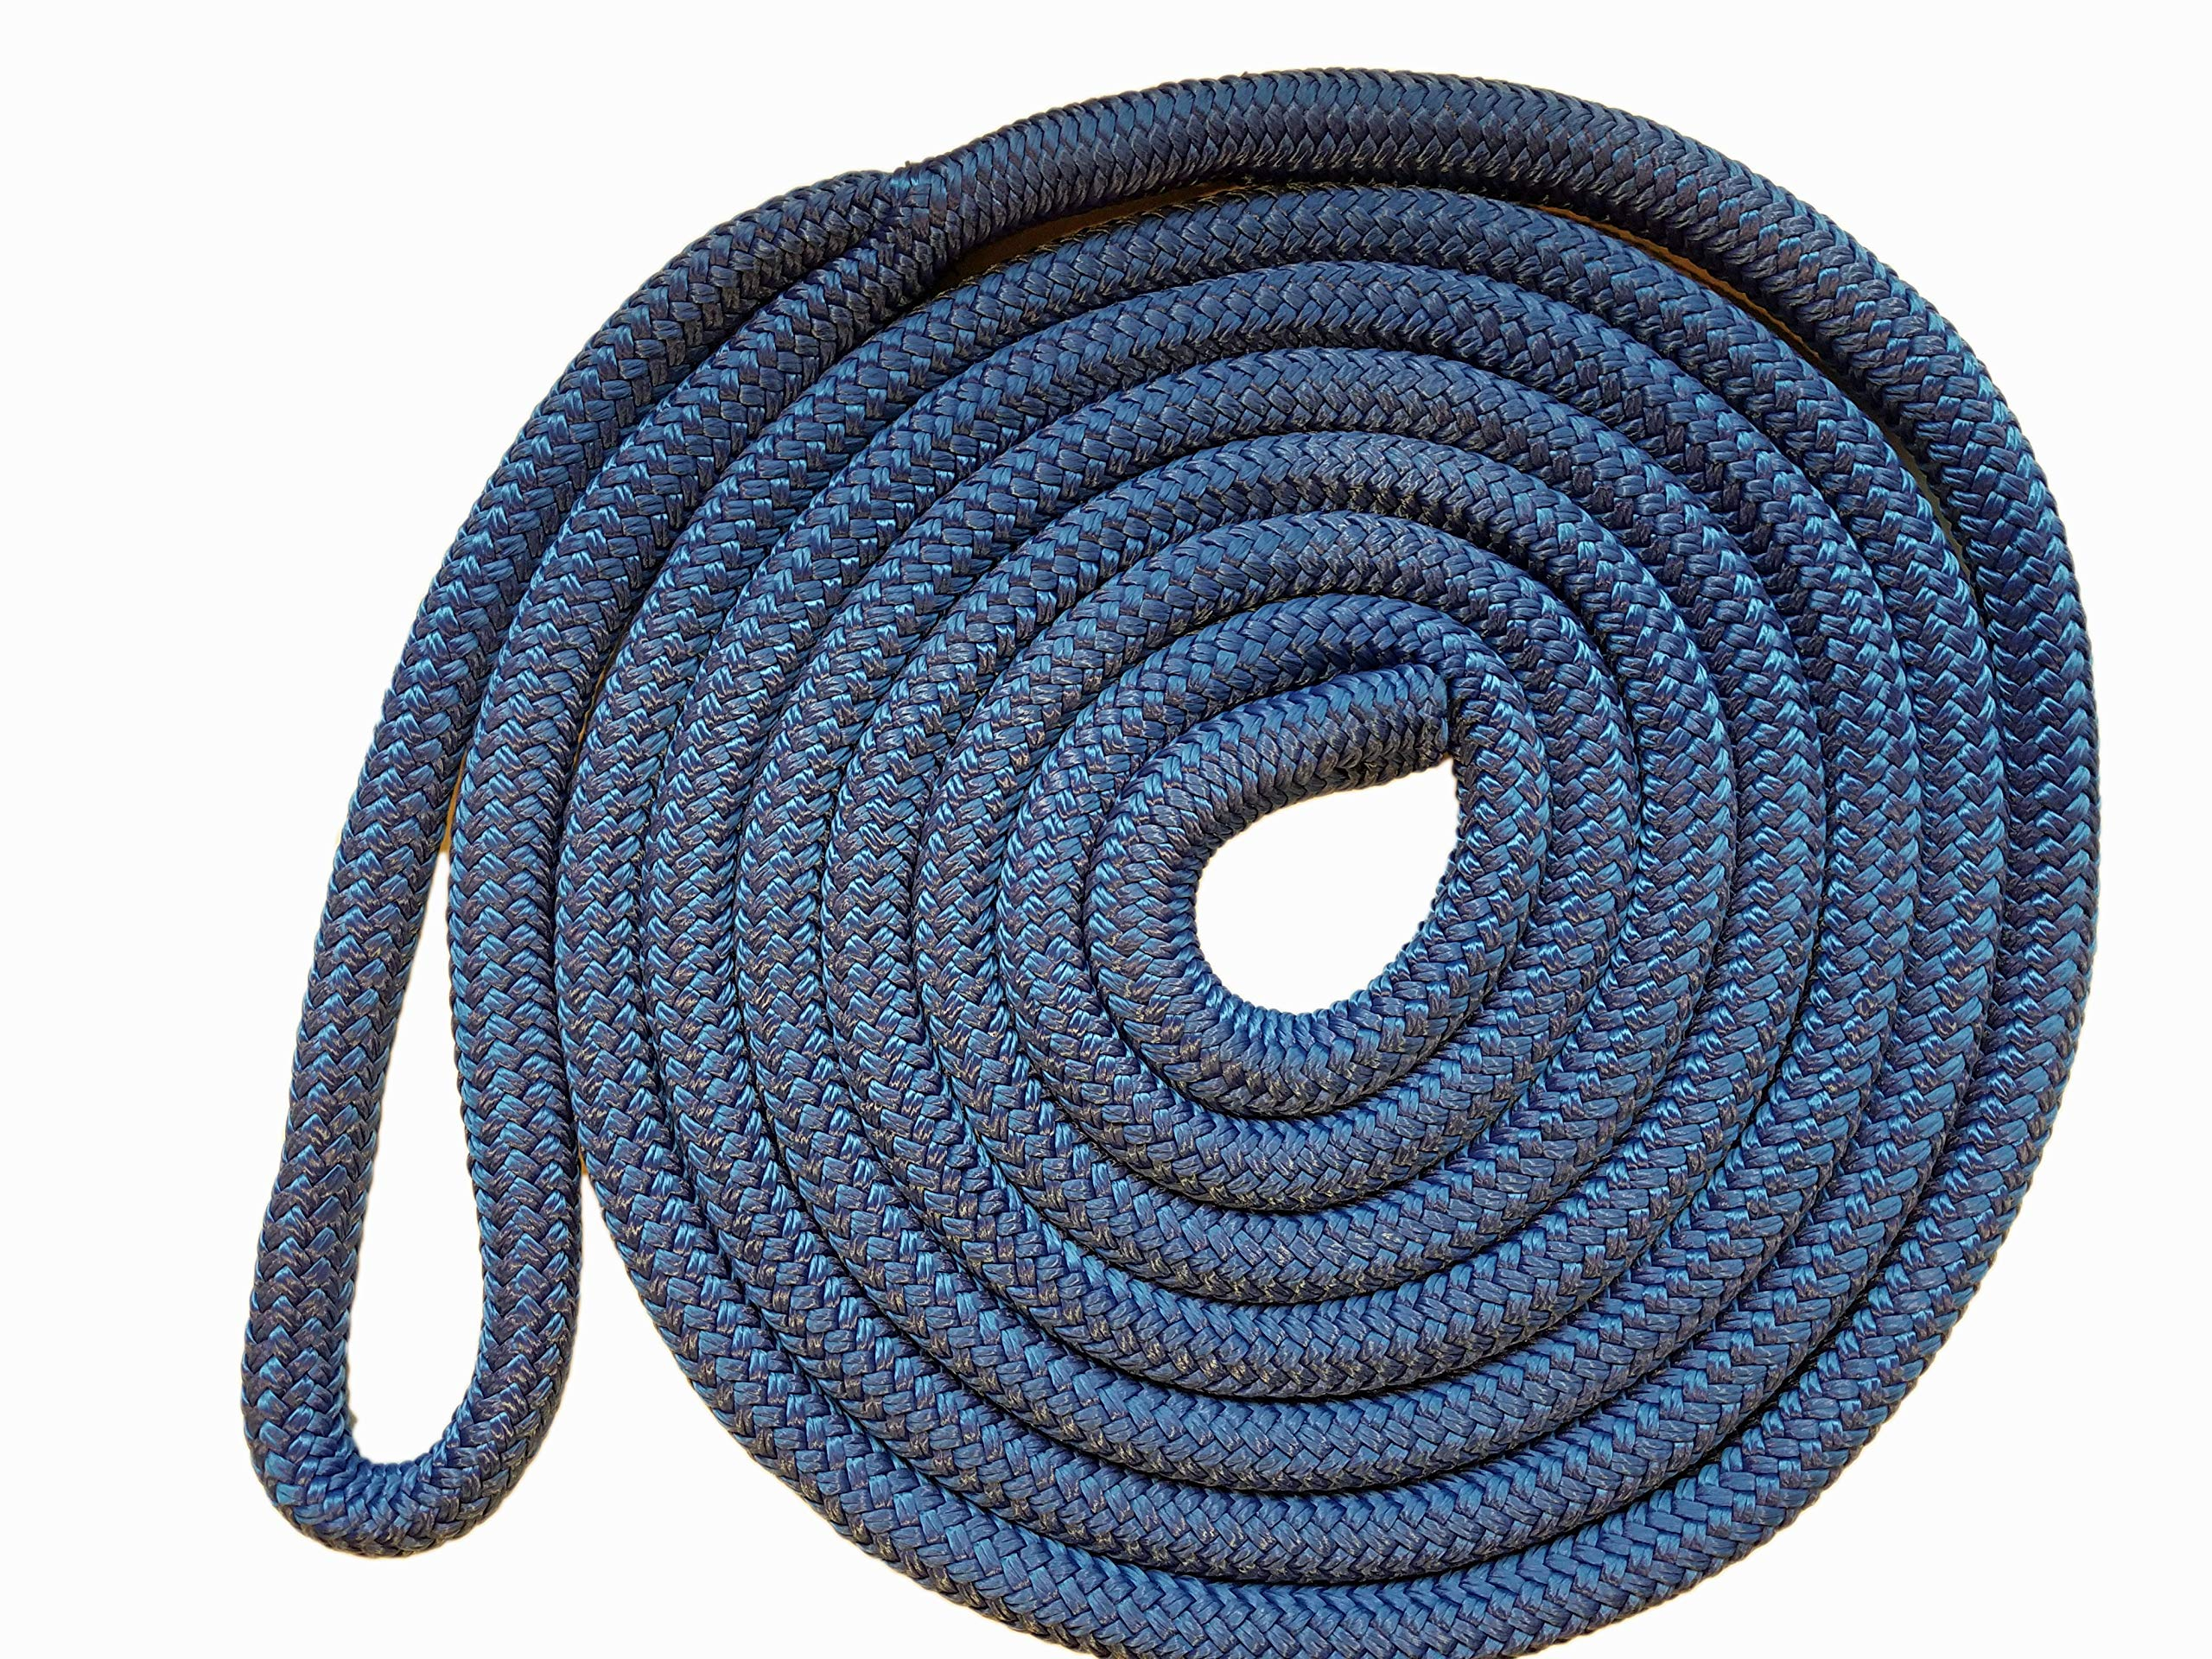 Knotty Girlz 5/8'' Double Braid Nylon Dock Line Yacht Rope or Mooring Line 100ft, 50ft, 25ft. or 15ft. Overall Length with Eye Spliced Loop (Blue, 15ft.)